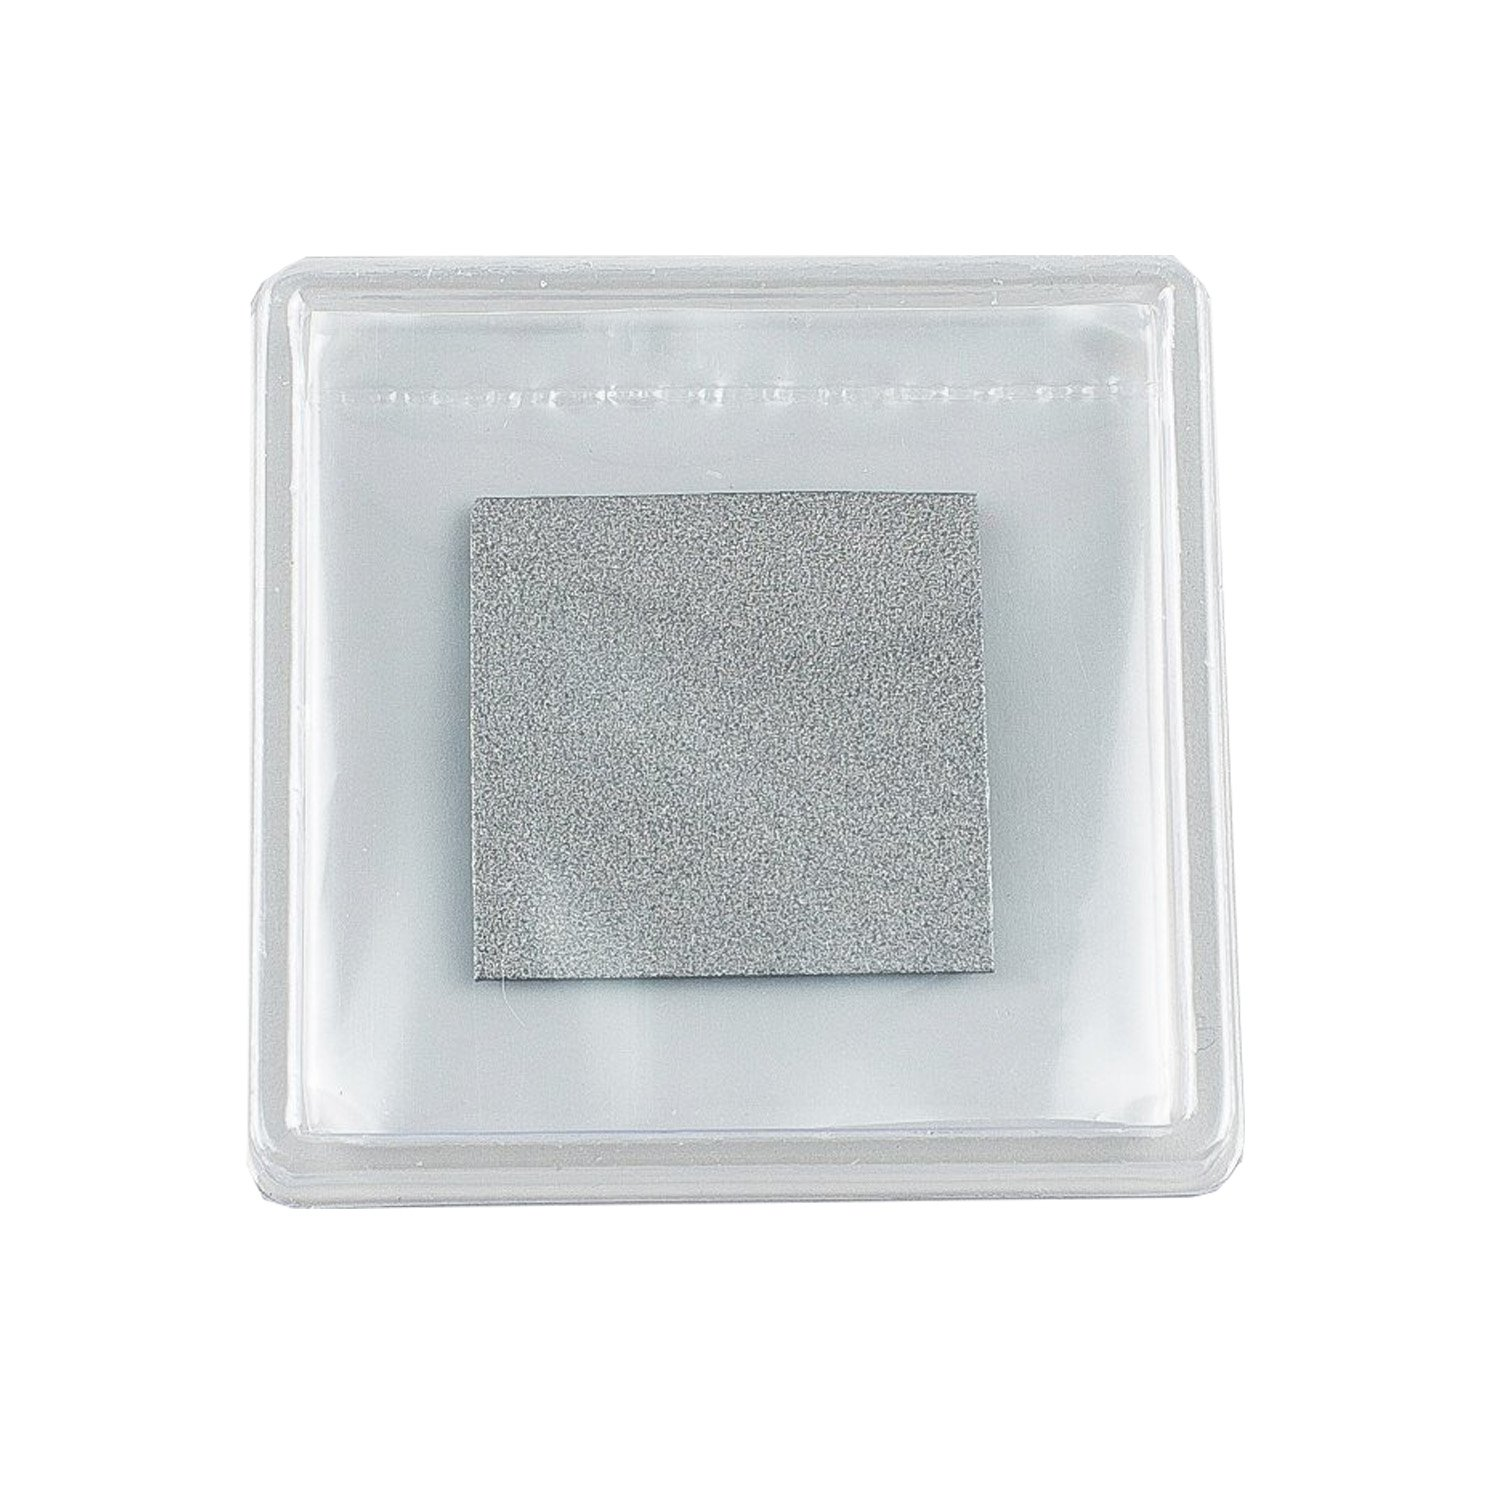 Innovation Cooling Graphite Thermal Pad – Alternative to Thermal Paste/Grease (30 X 30mm) by Innovation Cooling (Image #2)